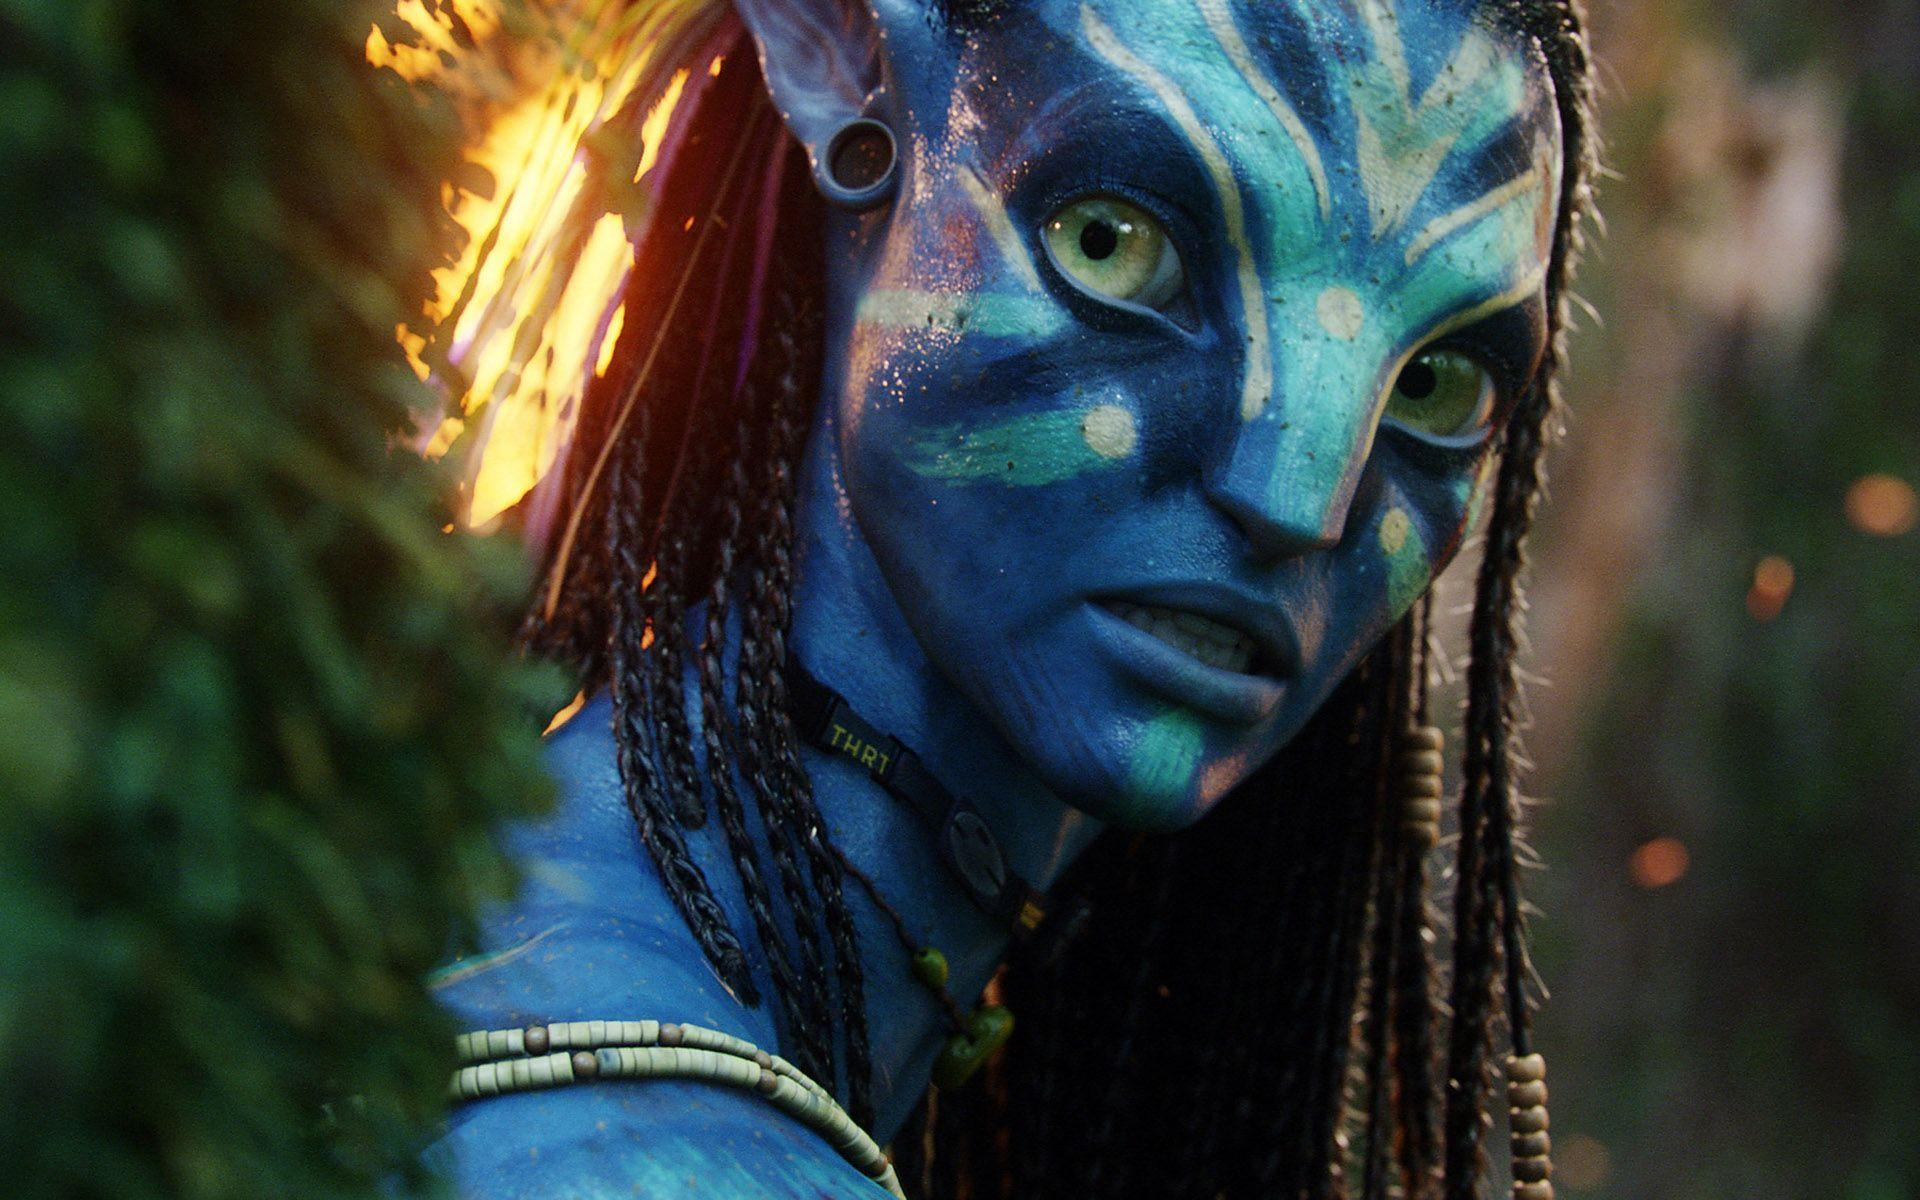 Avatar Wallpapers - Full HD wallpaper search - page 4